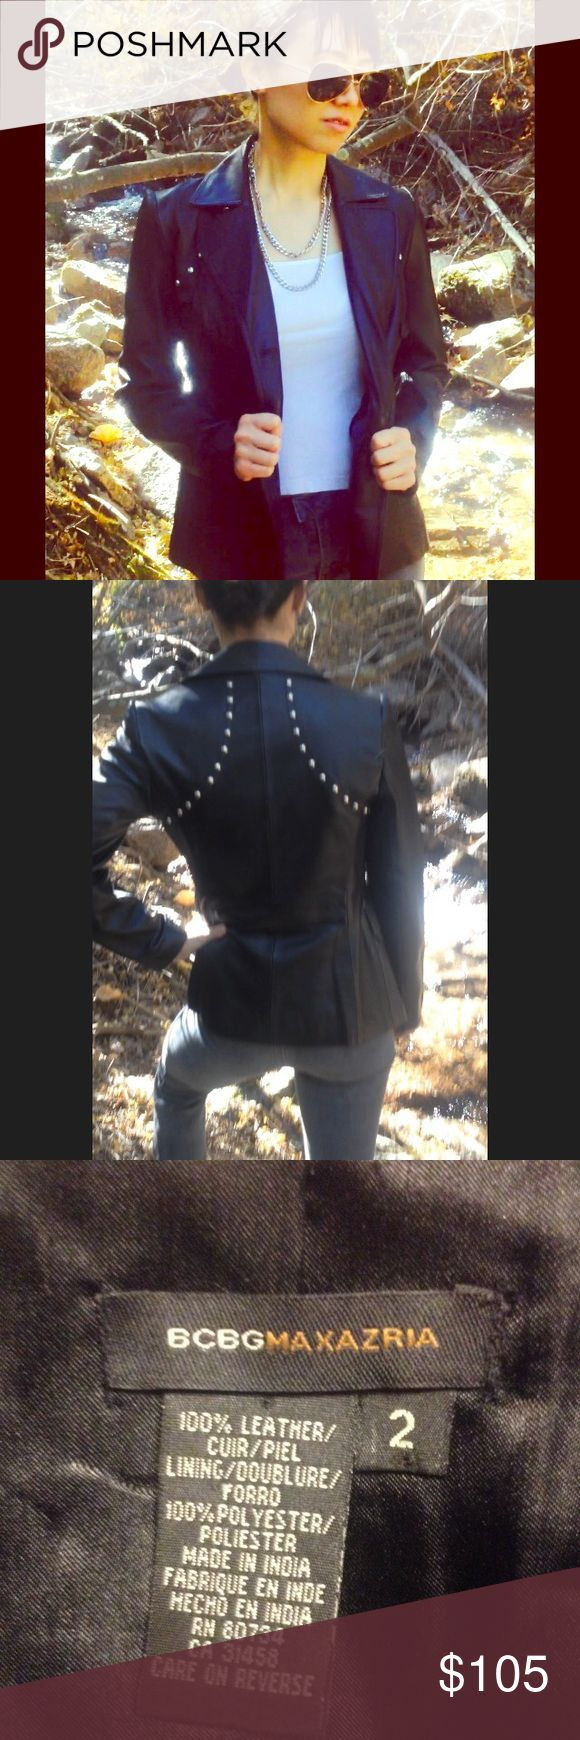 BCBG Max Azria black leather jacket Gorgeous 100% leather, double breasted, fully lined, black leather BCBG Max Azria jacket. Stud details, functional pockets, and a true to size fit. The jacket is a beautifully made, trend-led piece that compliments a variety of different tastes -!: wardrobes. BCBGMaxAzria Jackets & Coats